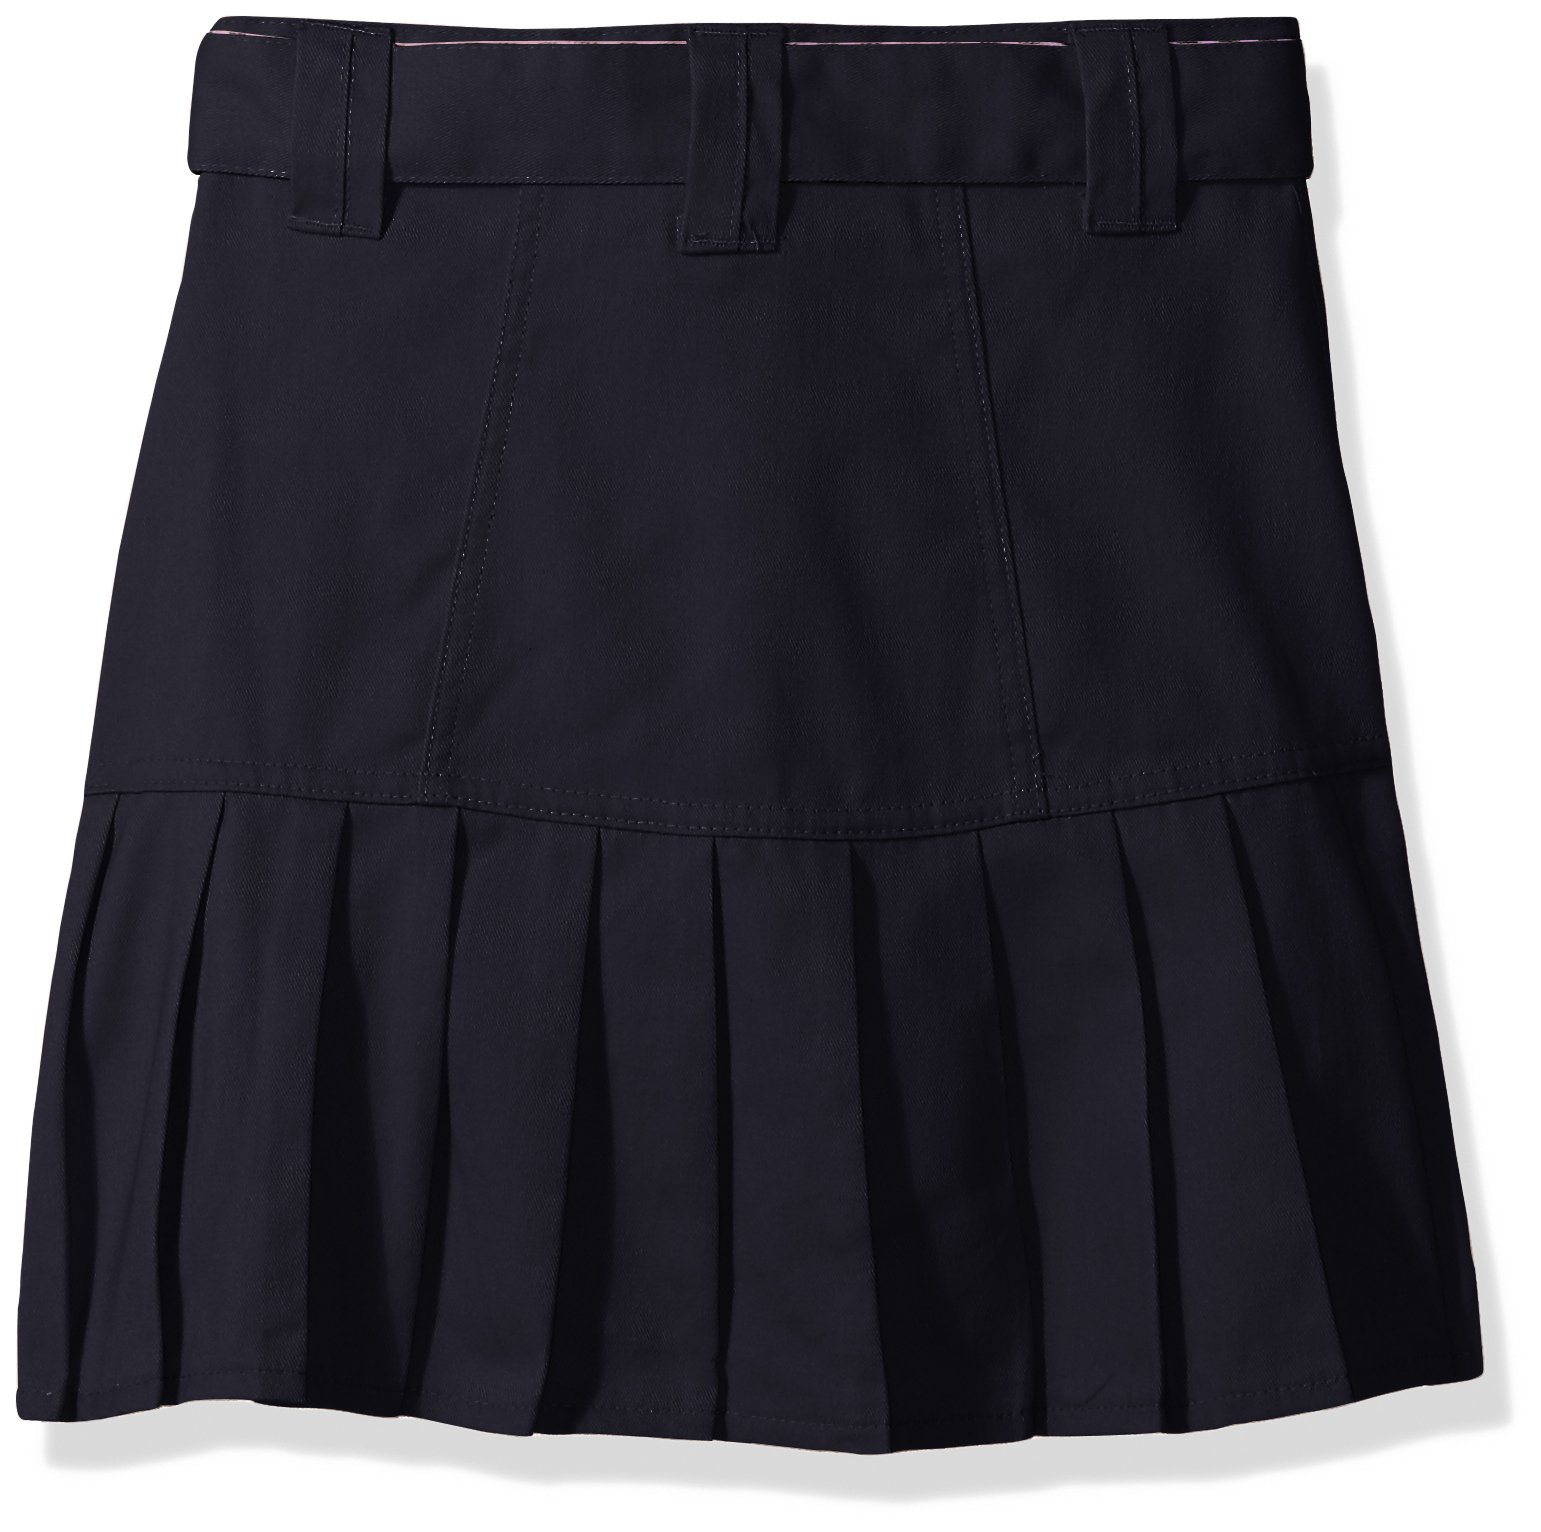 U.S. Polo Assn. Big Girls' Scooter (More Styles Available), Twill Navy-REDF, 8 by U.S. Polo Assn. (Image #2)